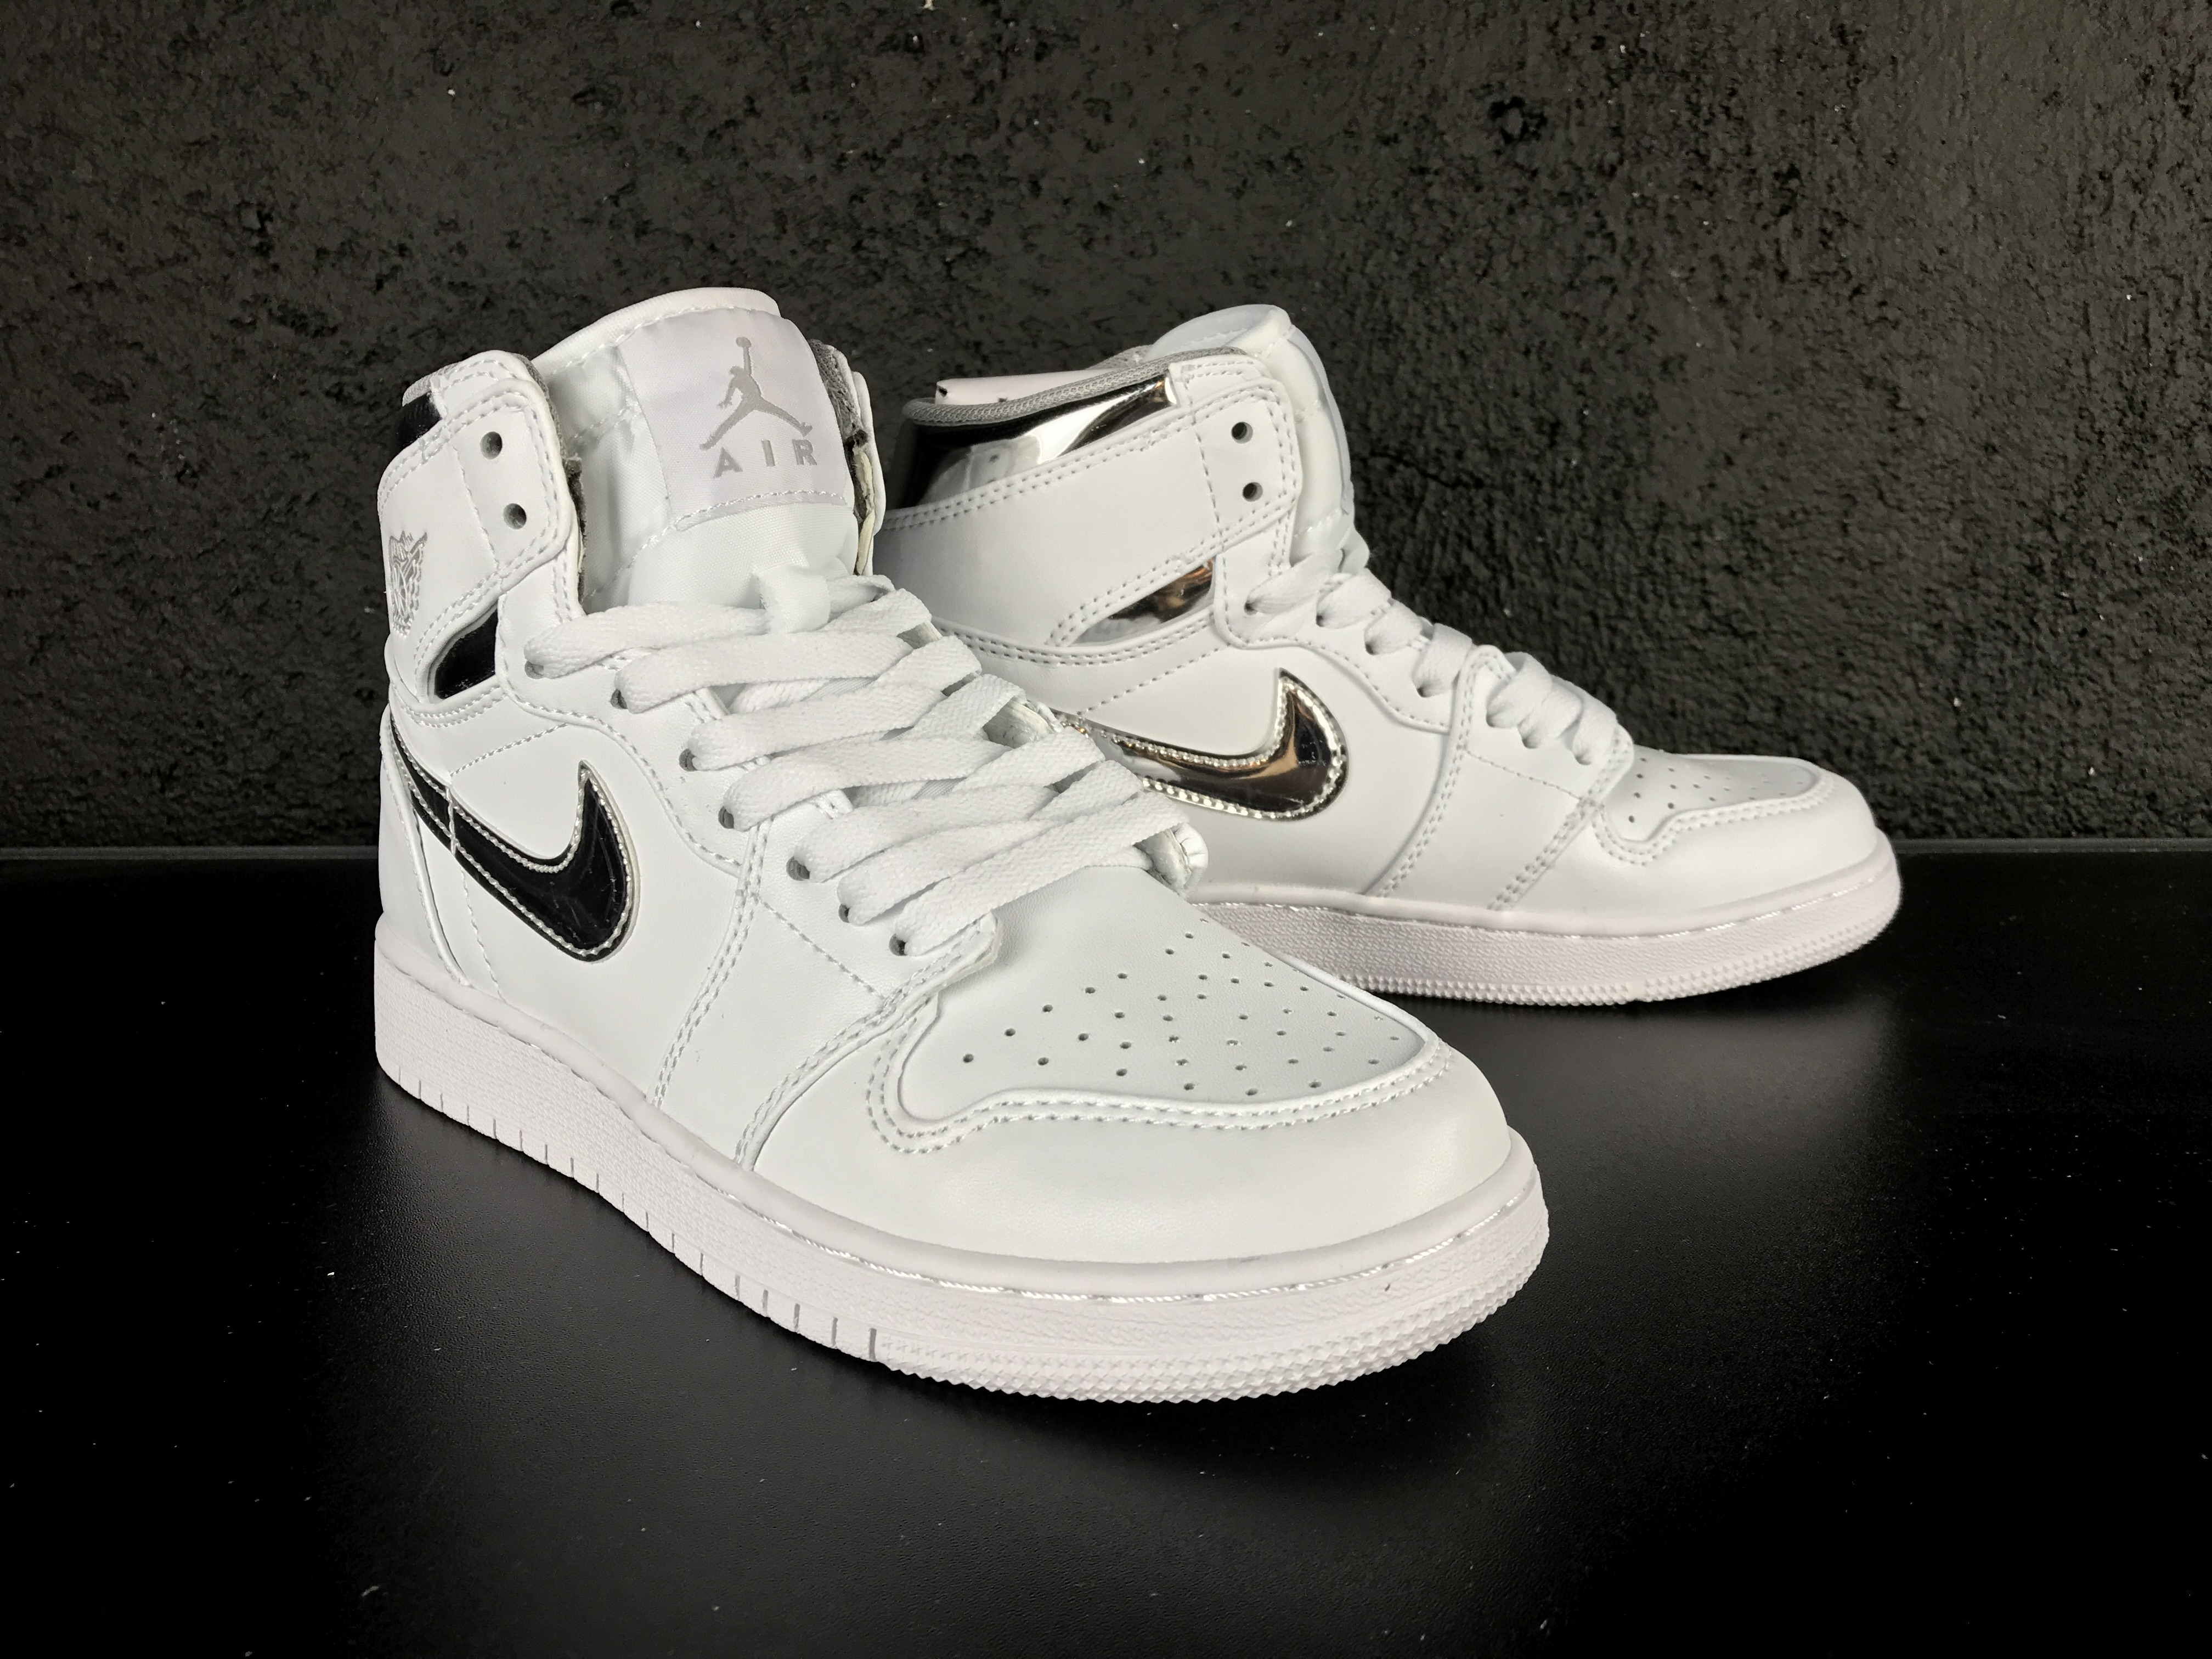 New Air Jordan 1 White Silver Shoes